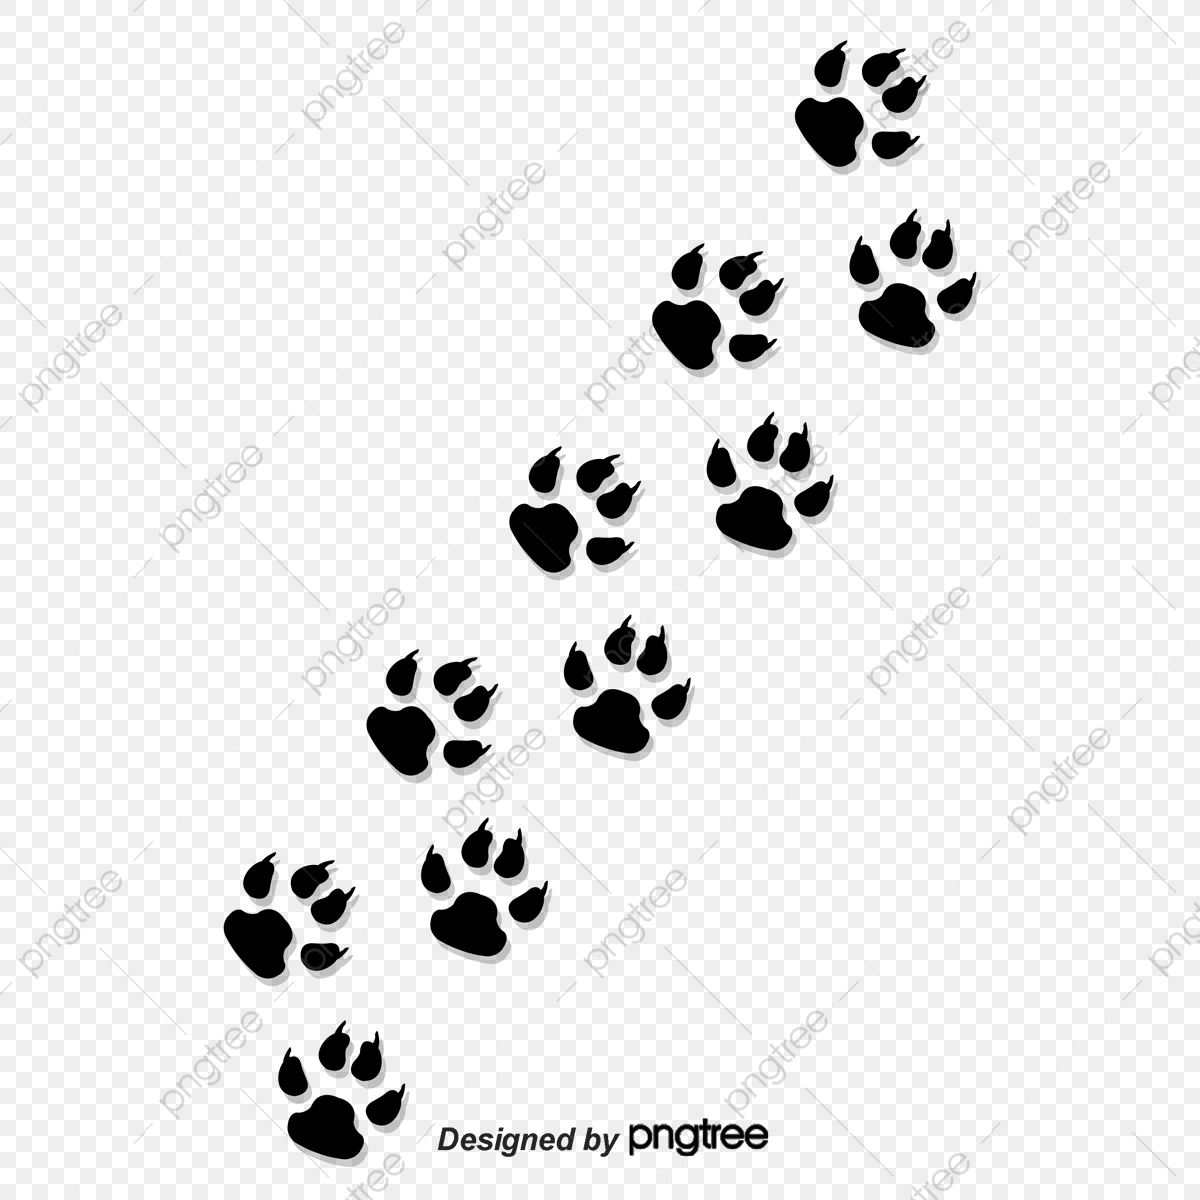 Paw Prints Png Images Vector And Psd Files Free Download On Pngtree Png's are 350dpi and are sent as finished files with transparent backgrounds. https pngtree com freepng creative paw prints 3187779 html